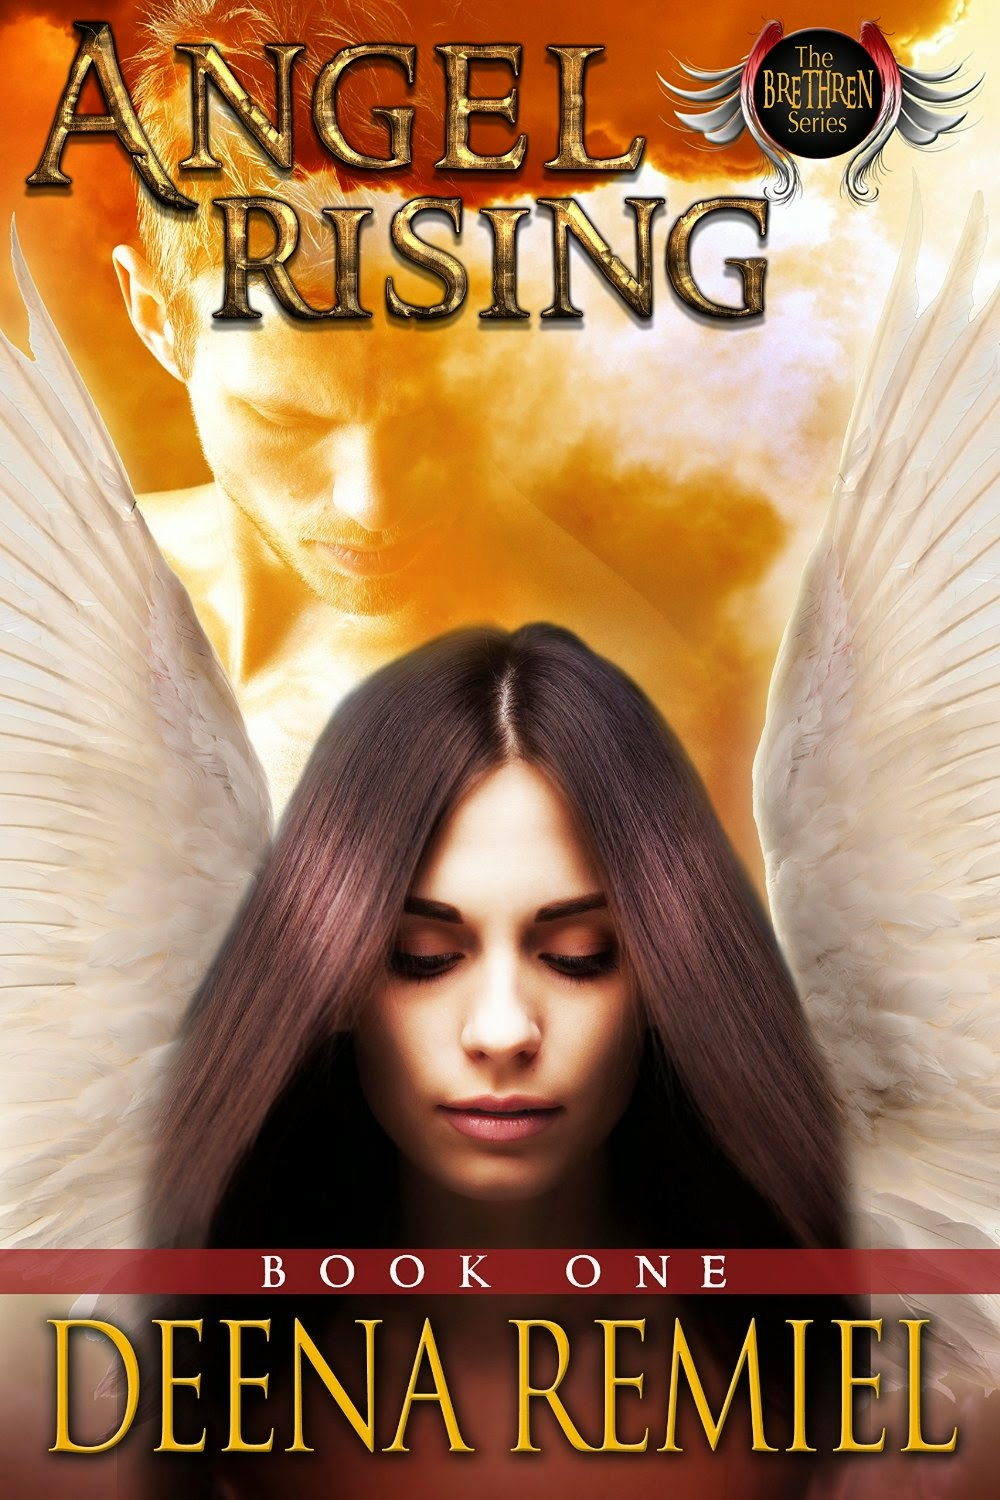 Angel Rising Book One (The Brethren Series 4) by Deena Remiel (PNR)